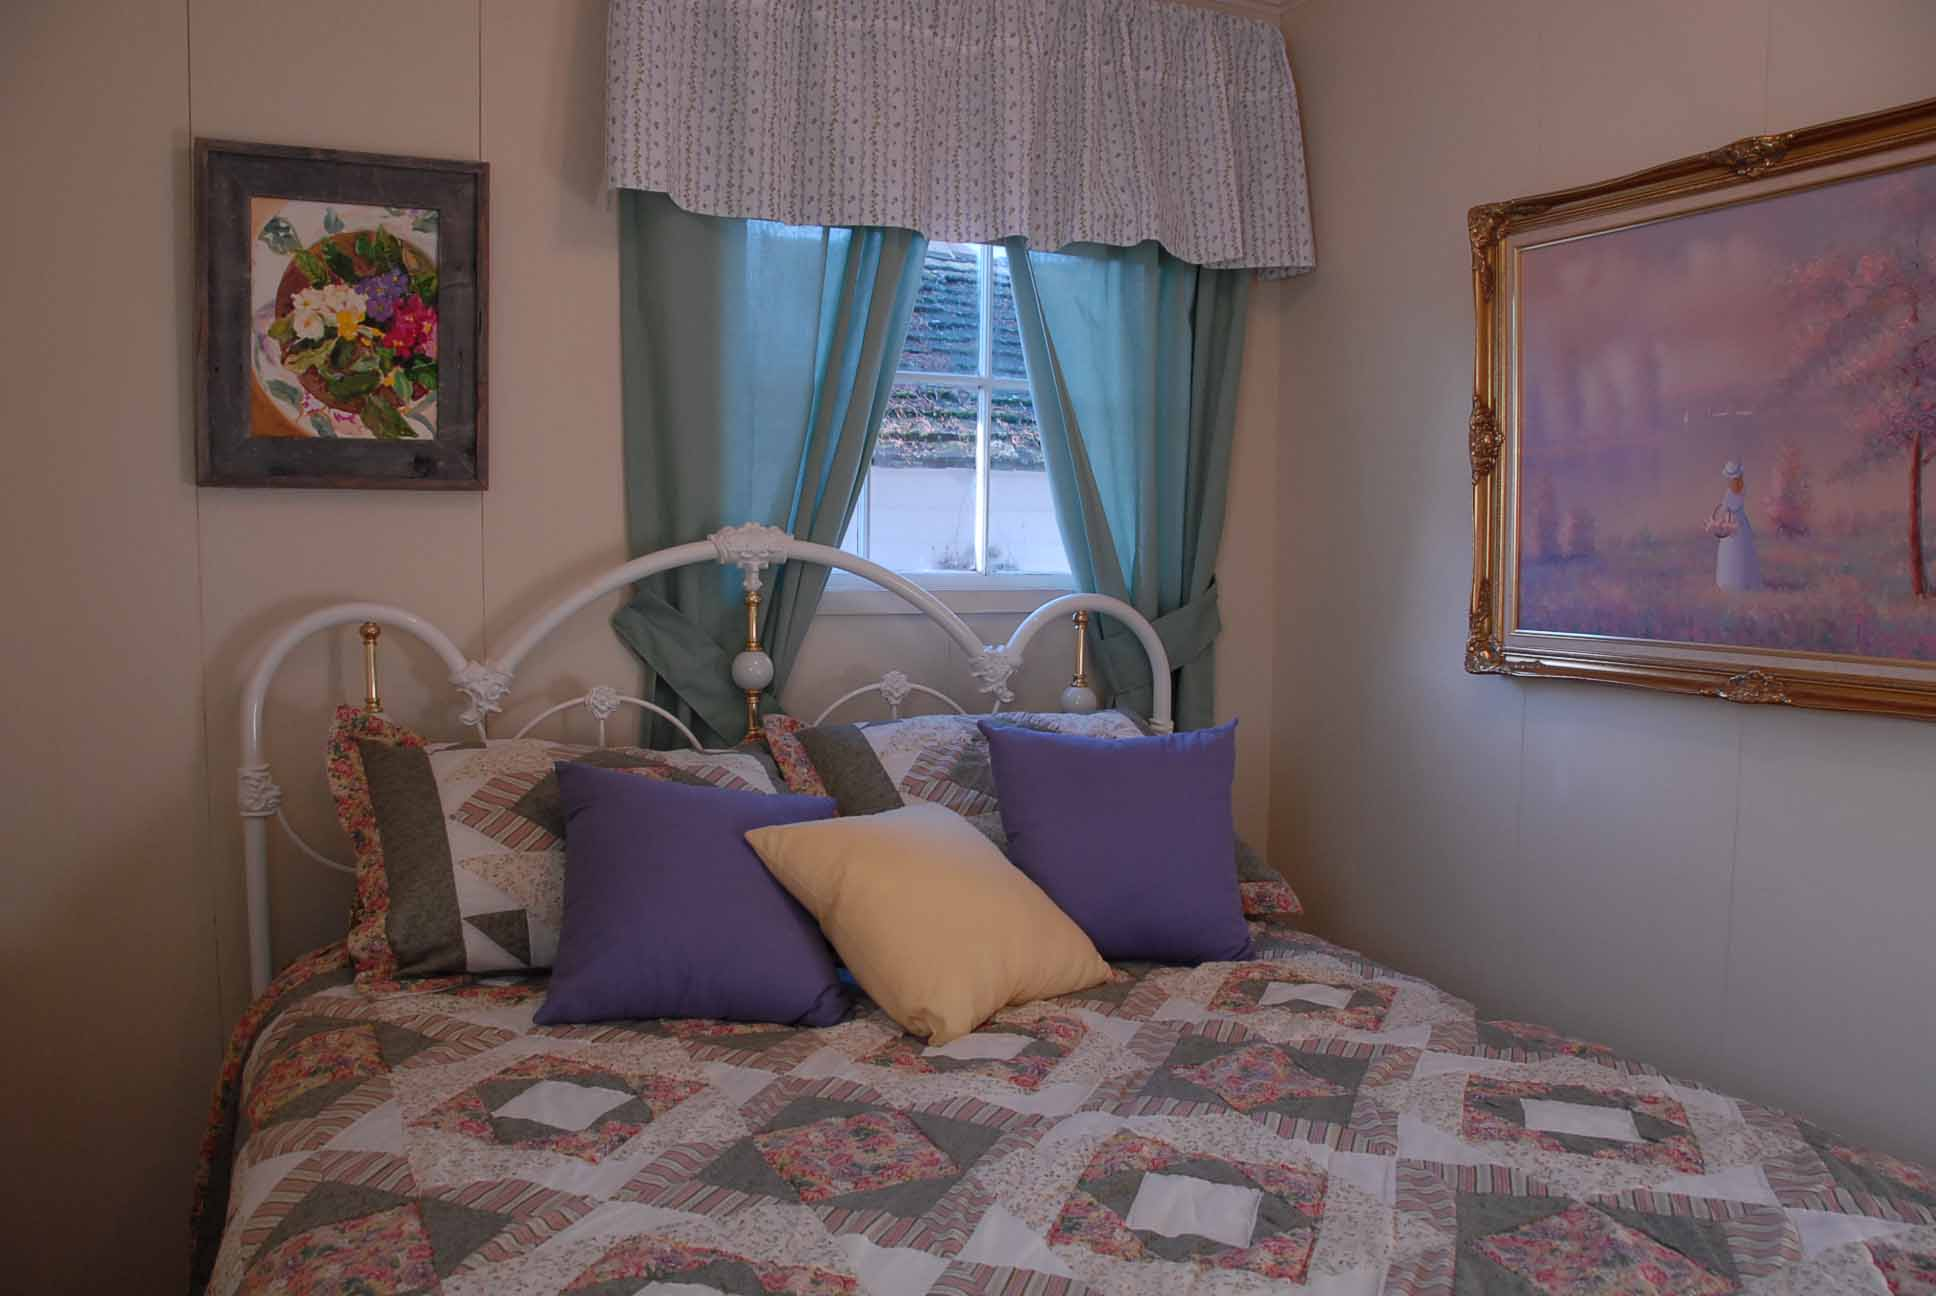 The master bedroom, includes queen size bed with white iron Victorian headboard, a picture on the wall of a girl picking flowers by a lake and a picture of flowers